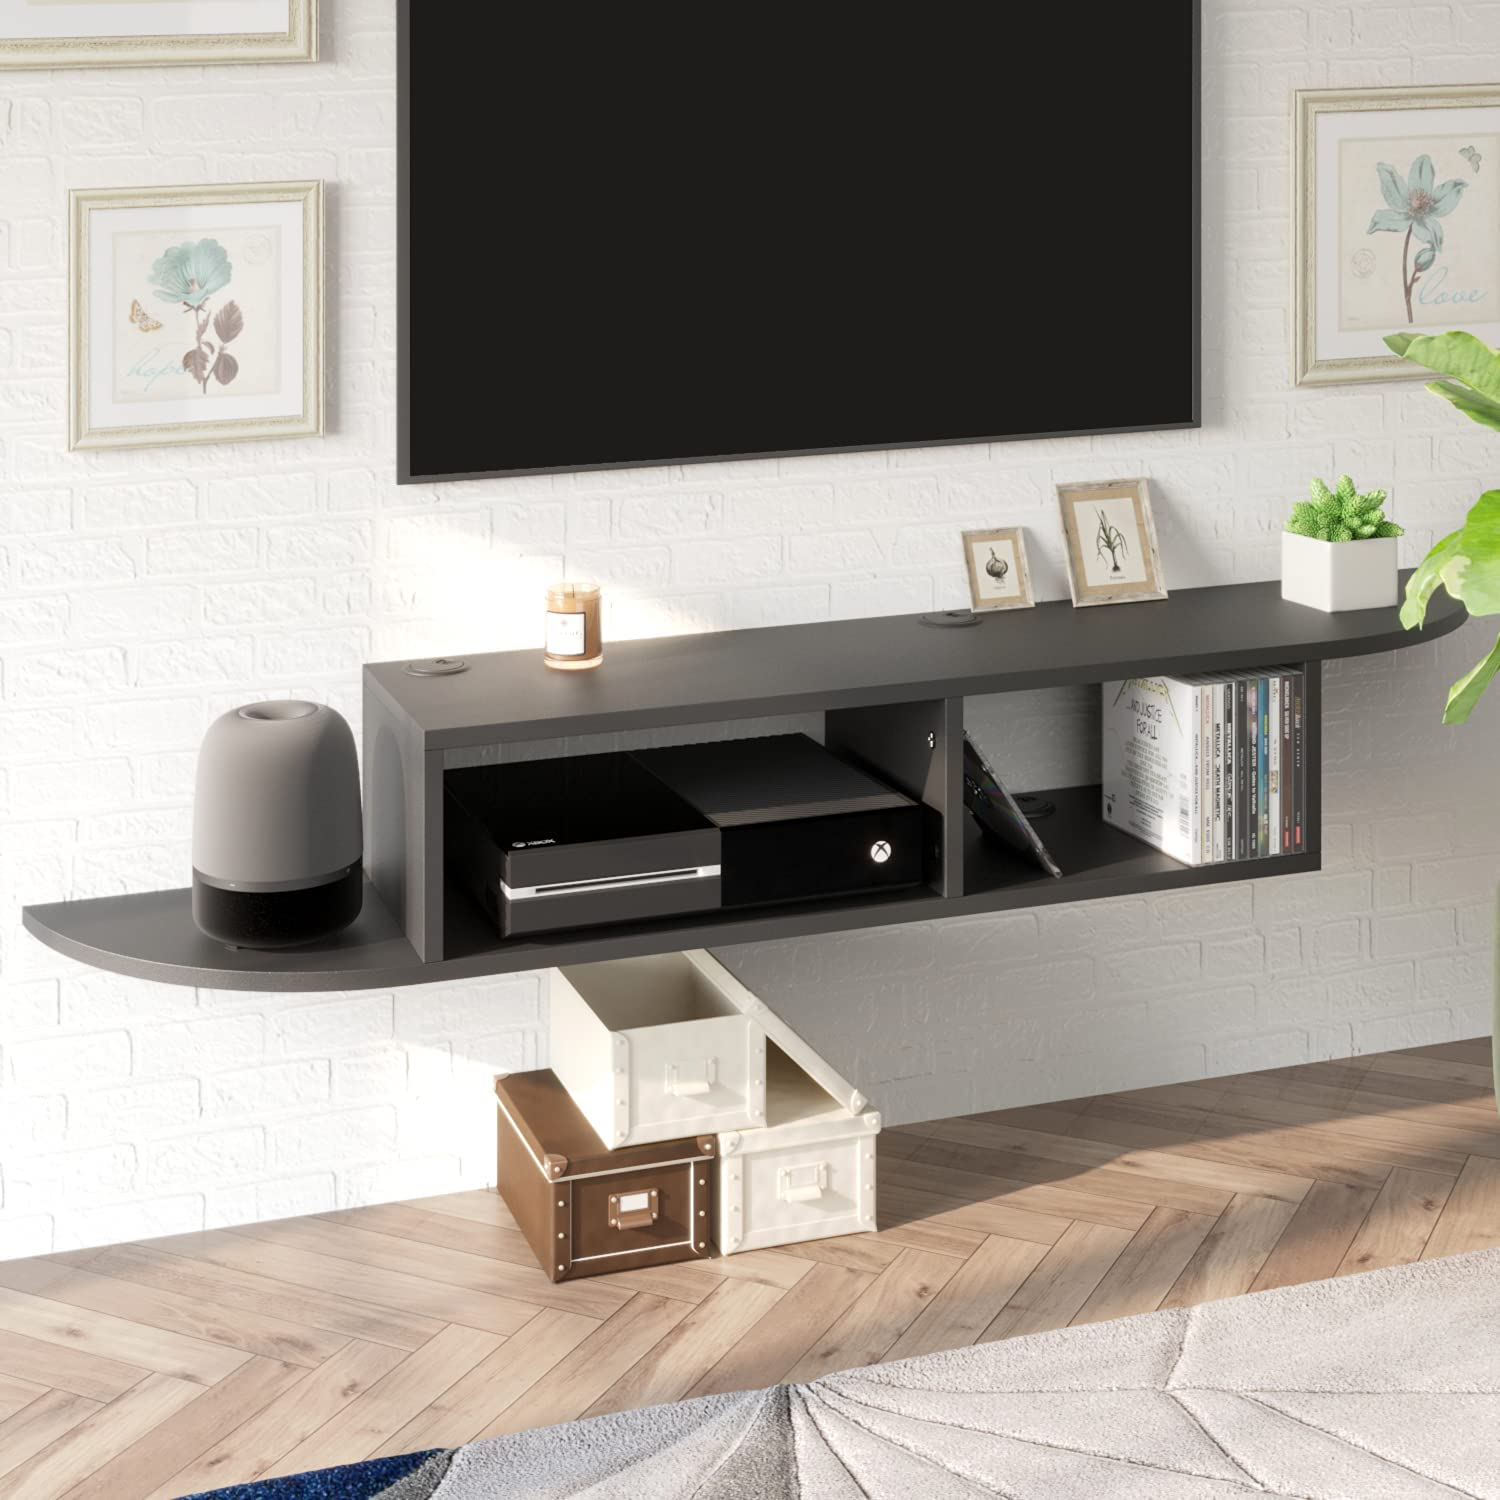 Floating TV Stand Entertainment Center safety Wall Mou Beauty products Modern Shelf